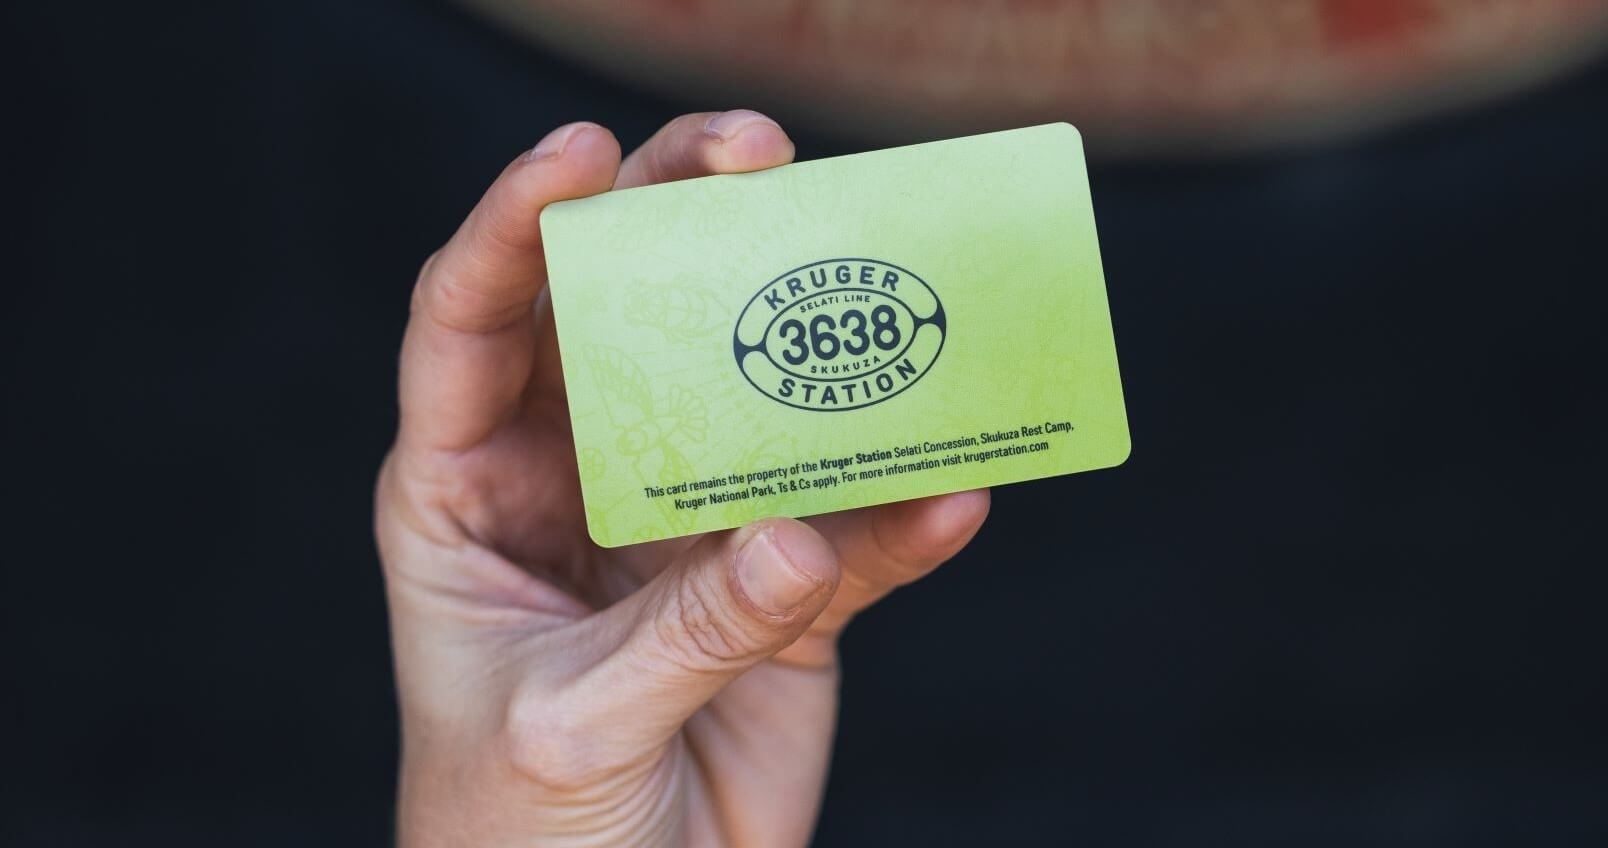 Kruger Station launches Loyalty Card